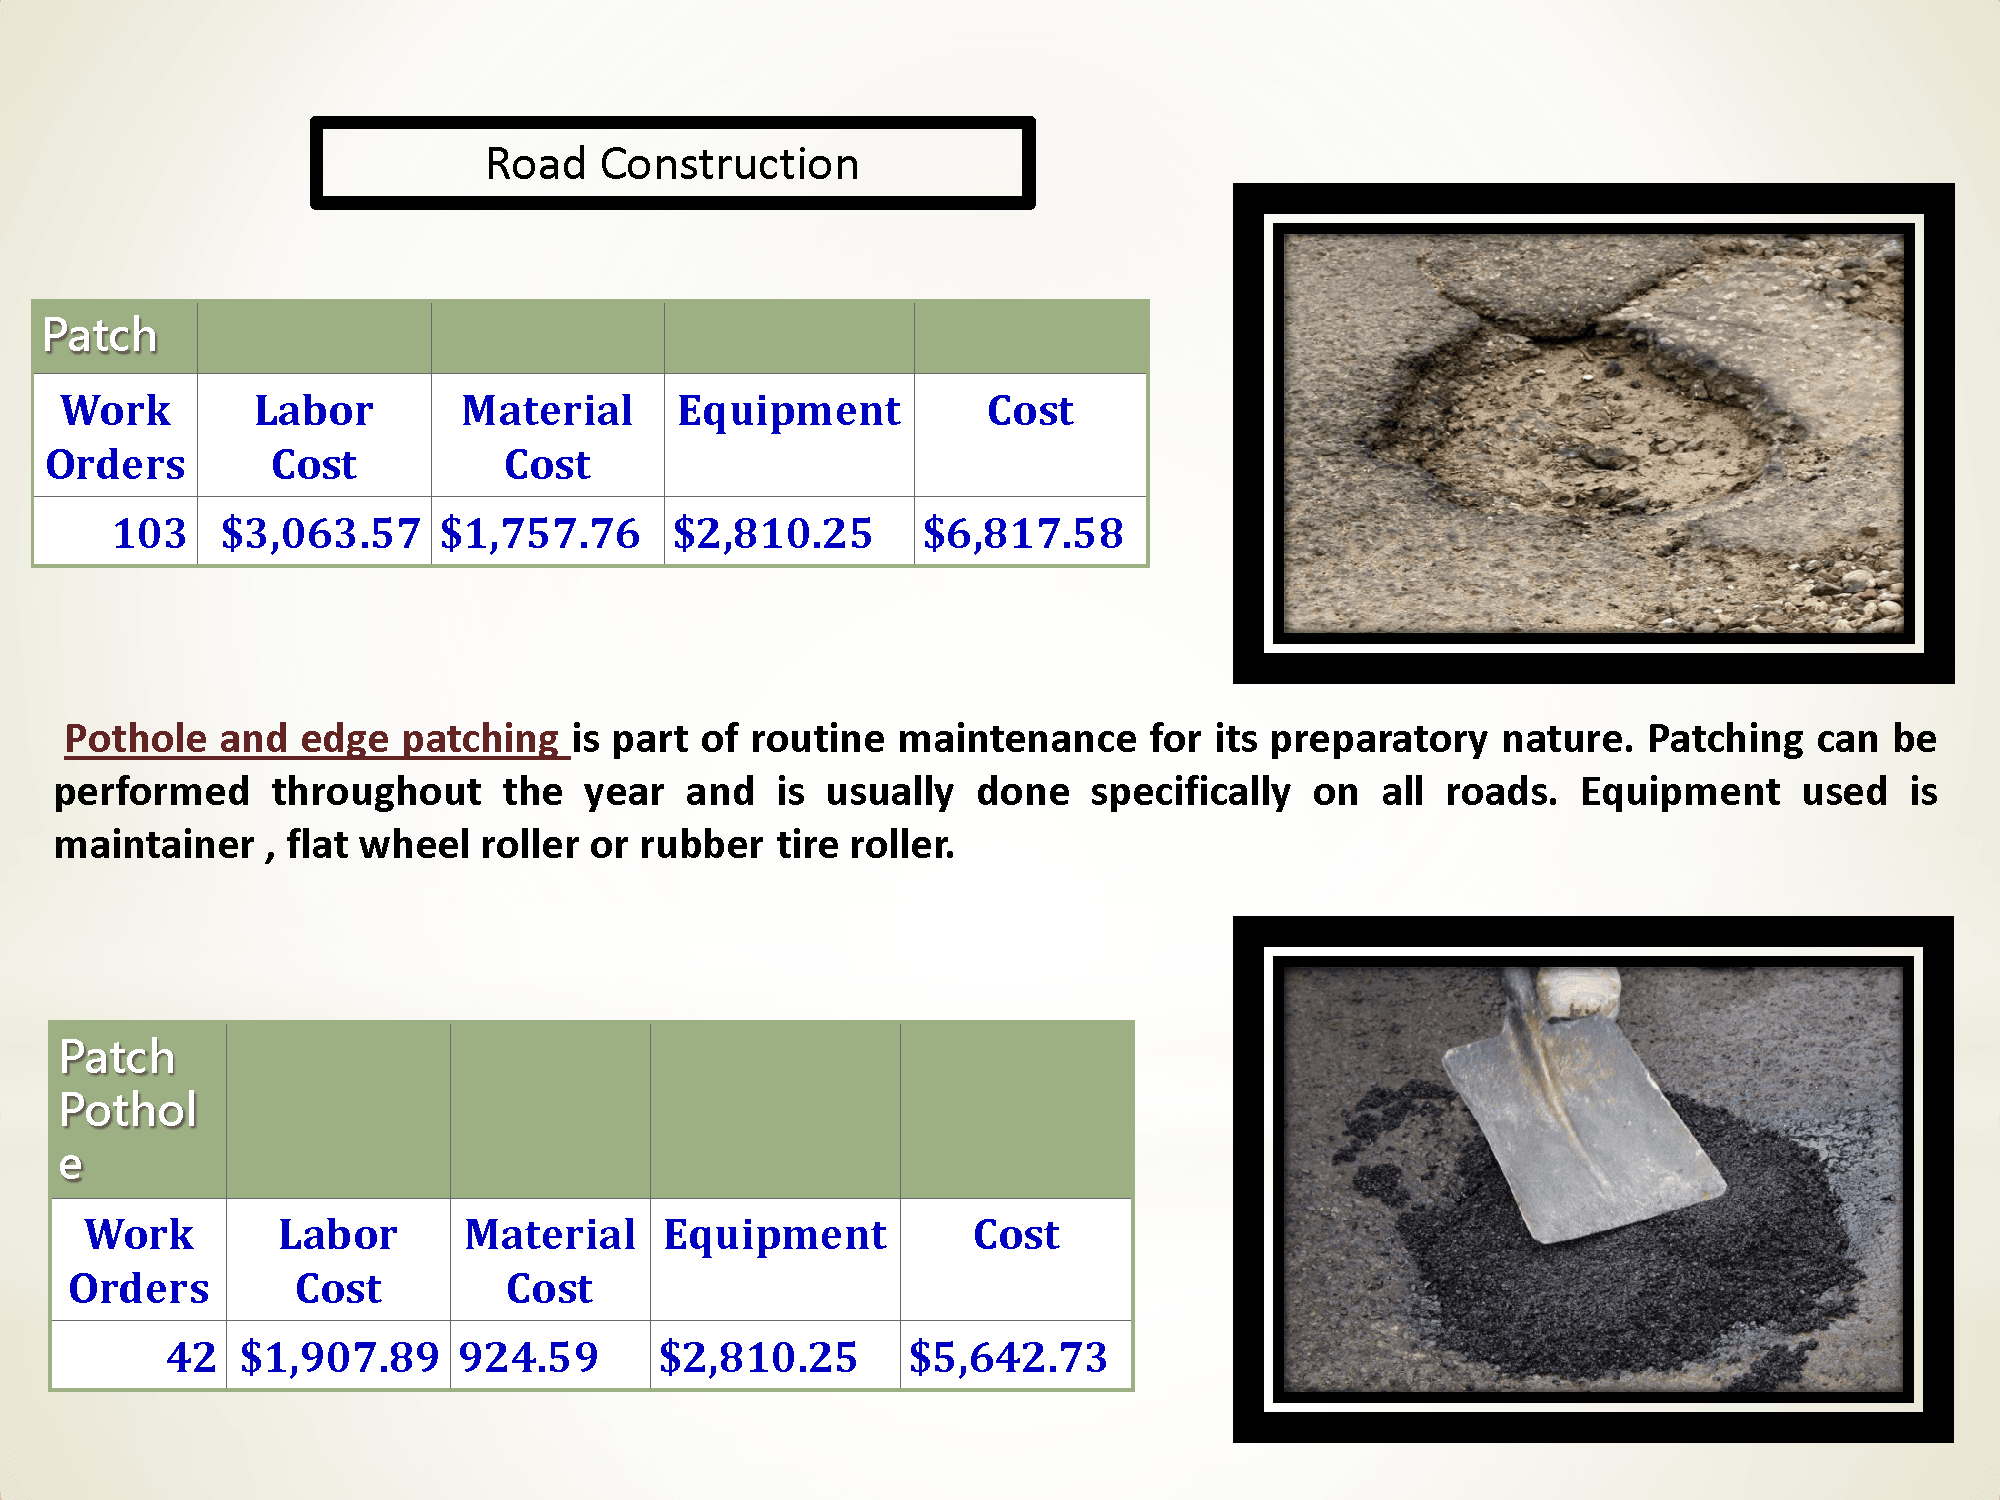 Pictures of Pot Hole Patching and Information